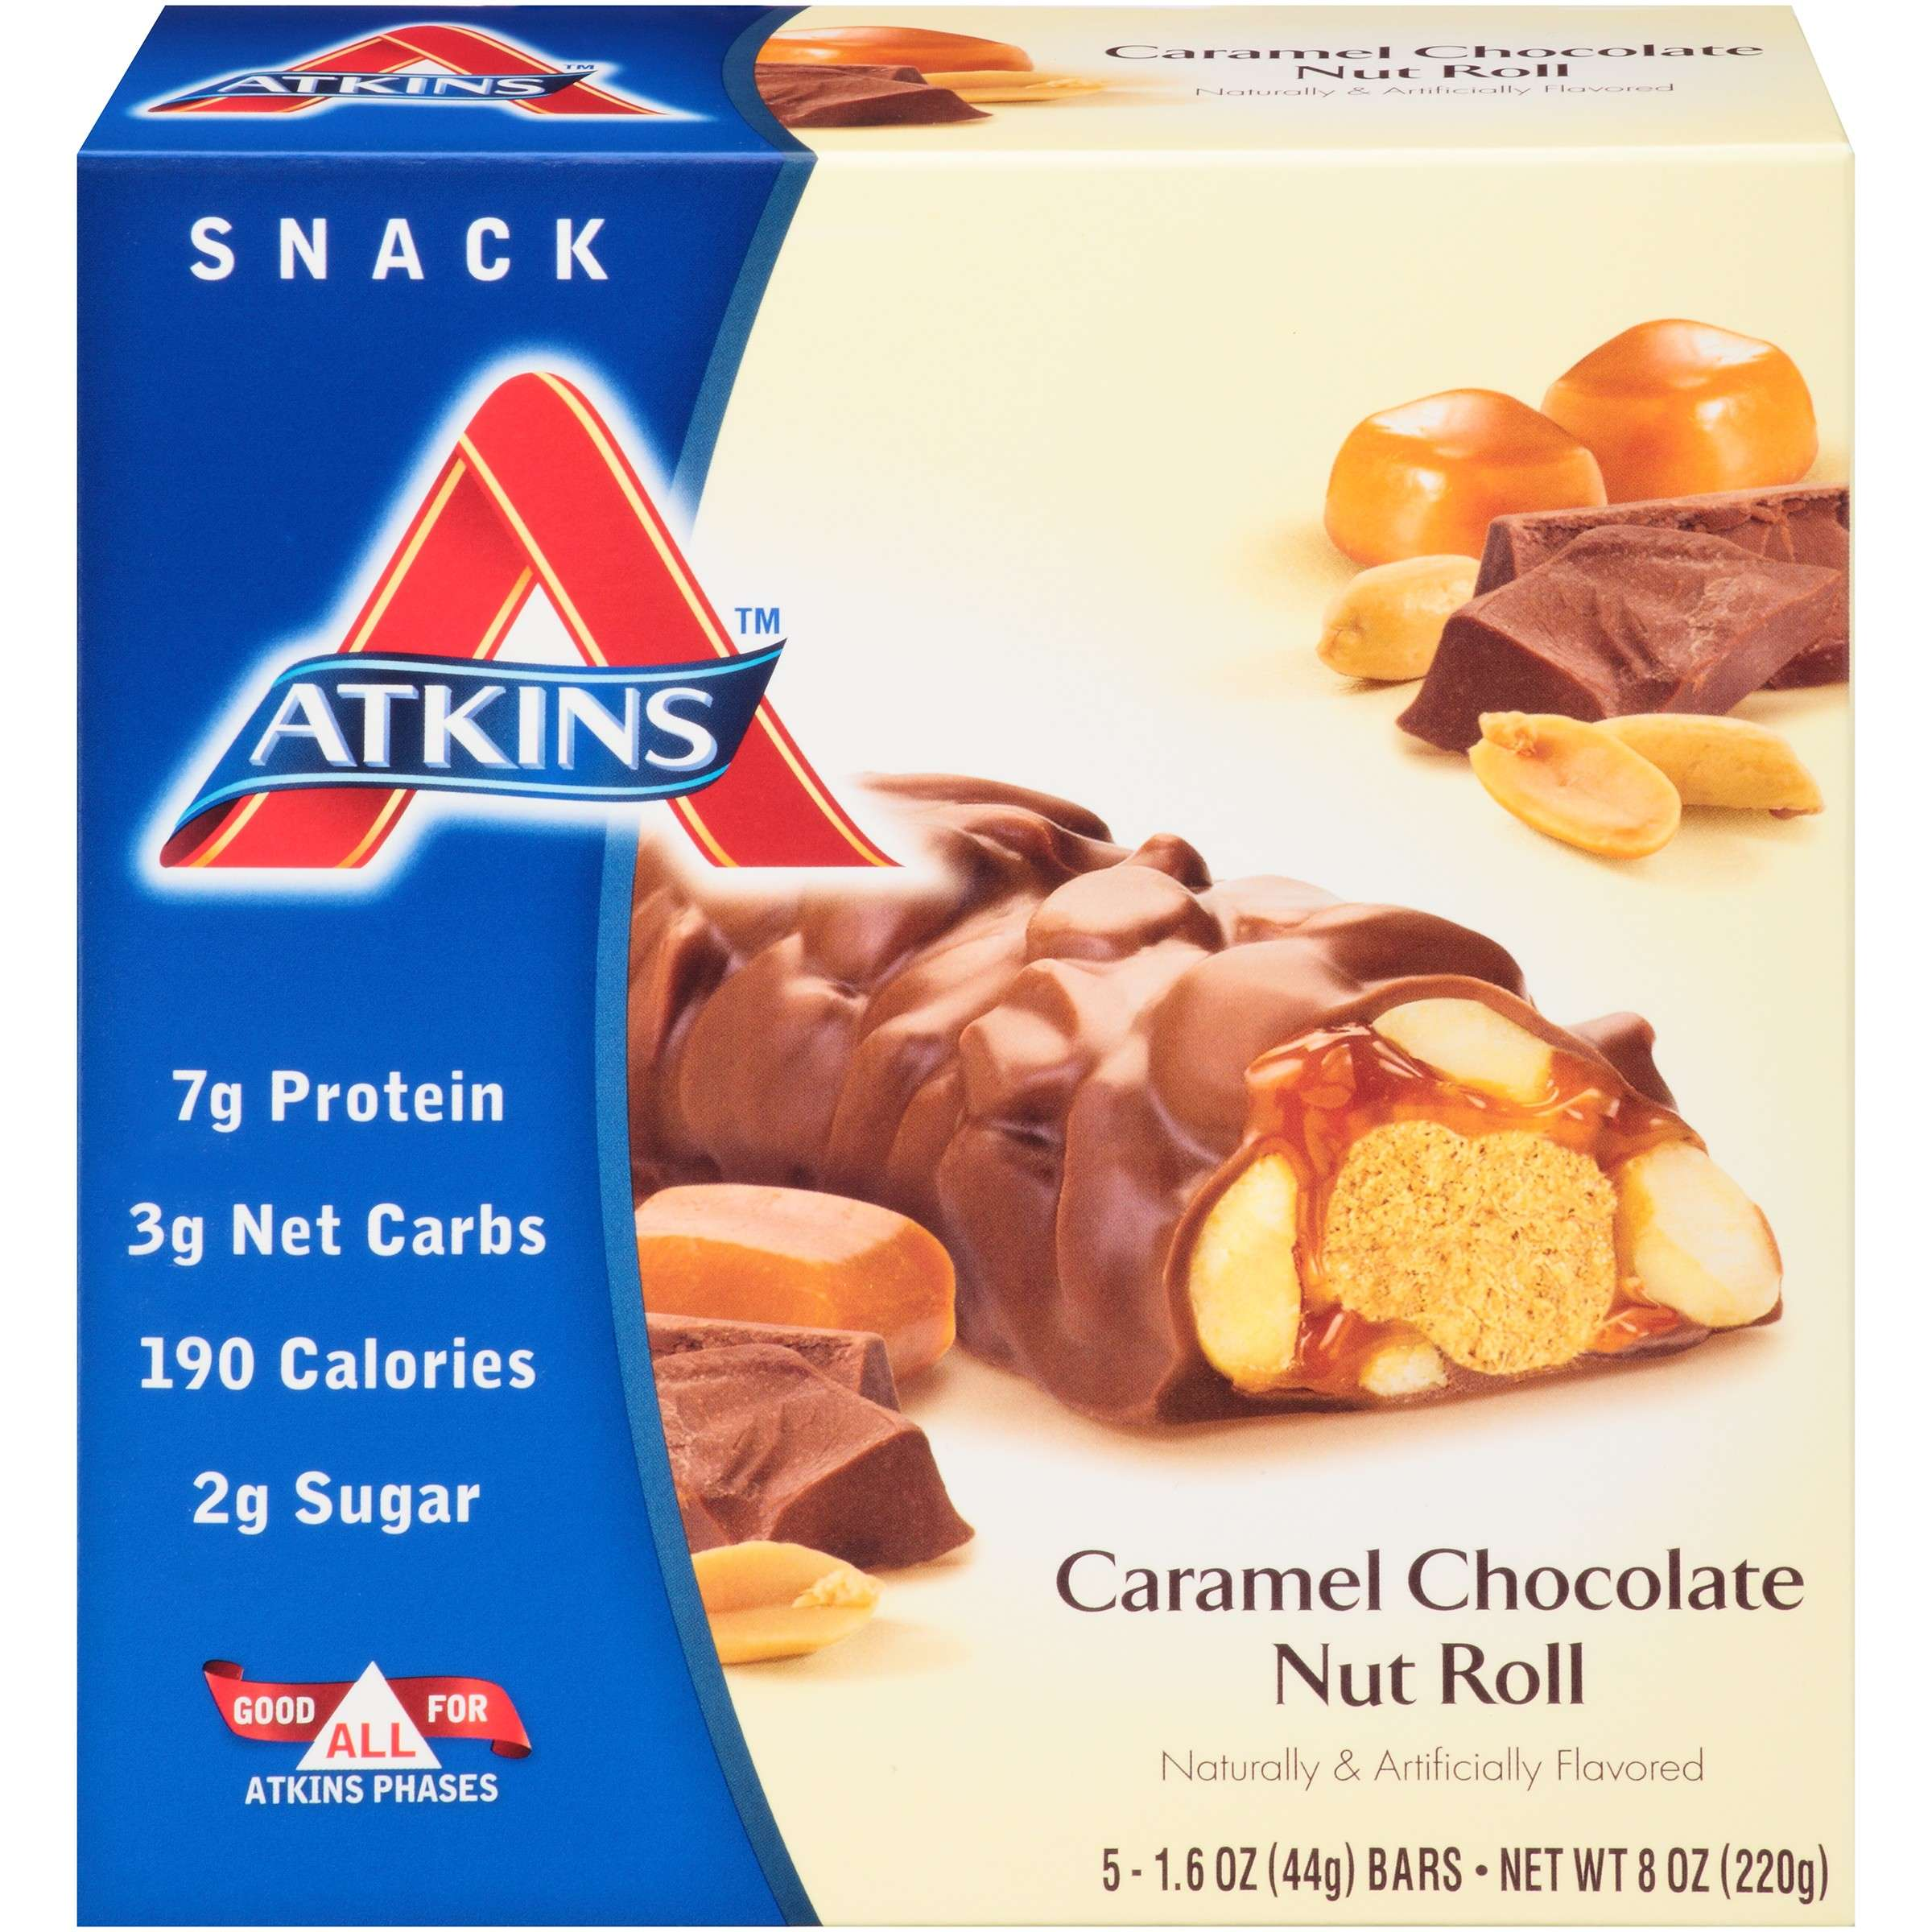 Atkins Snack Caramel Chocolate Nut Roll, 1.6oz, 5-pack (Snack)